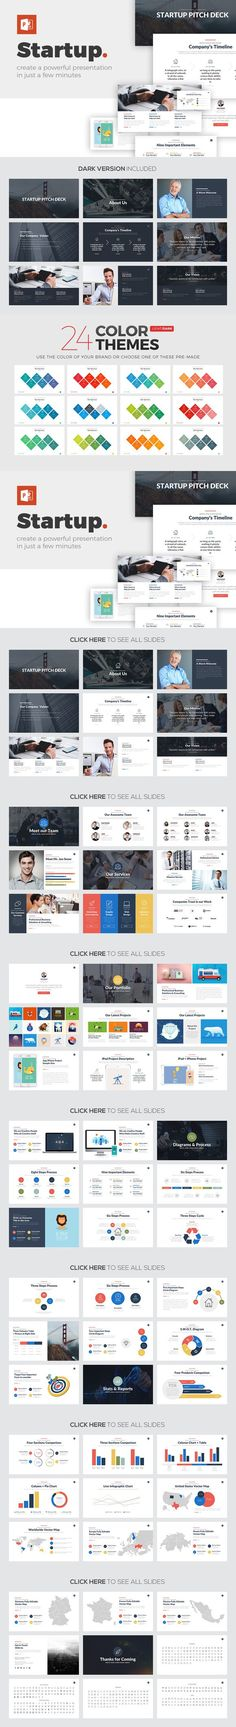 Startup PowerPoint Template. Business Infographic